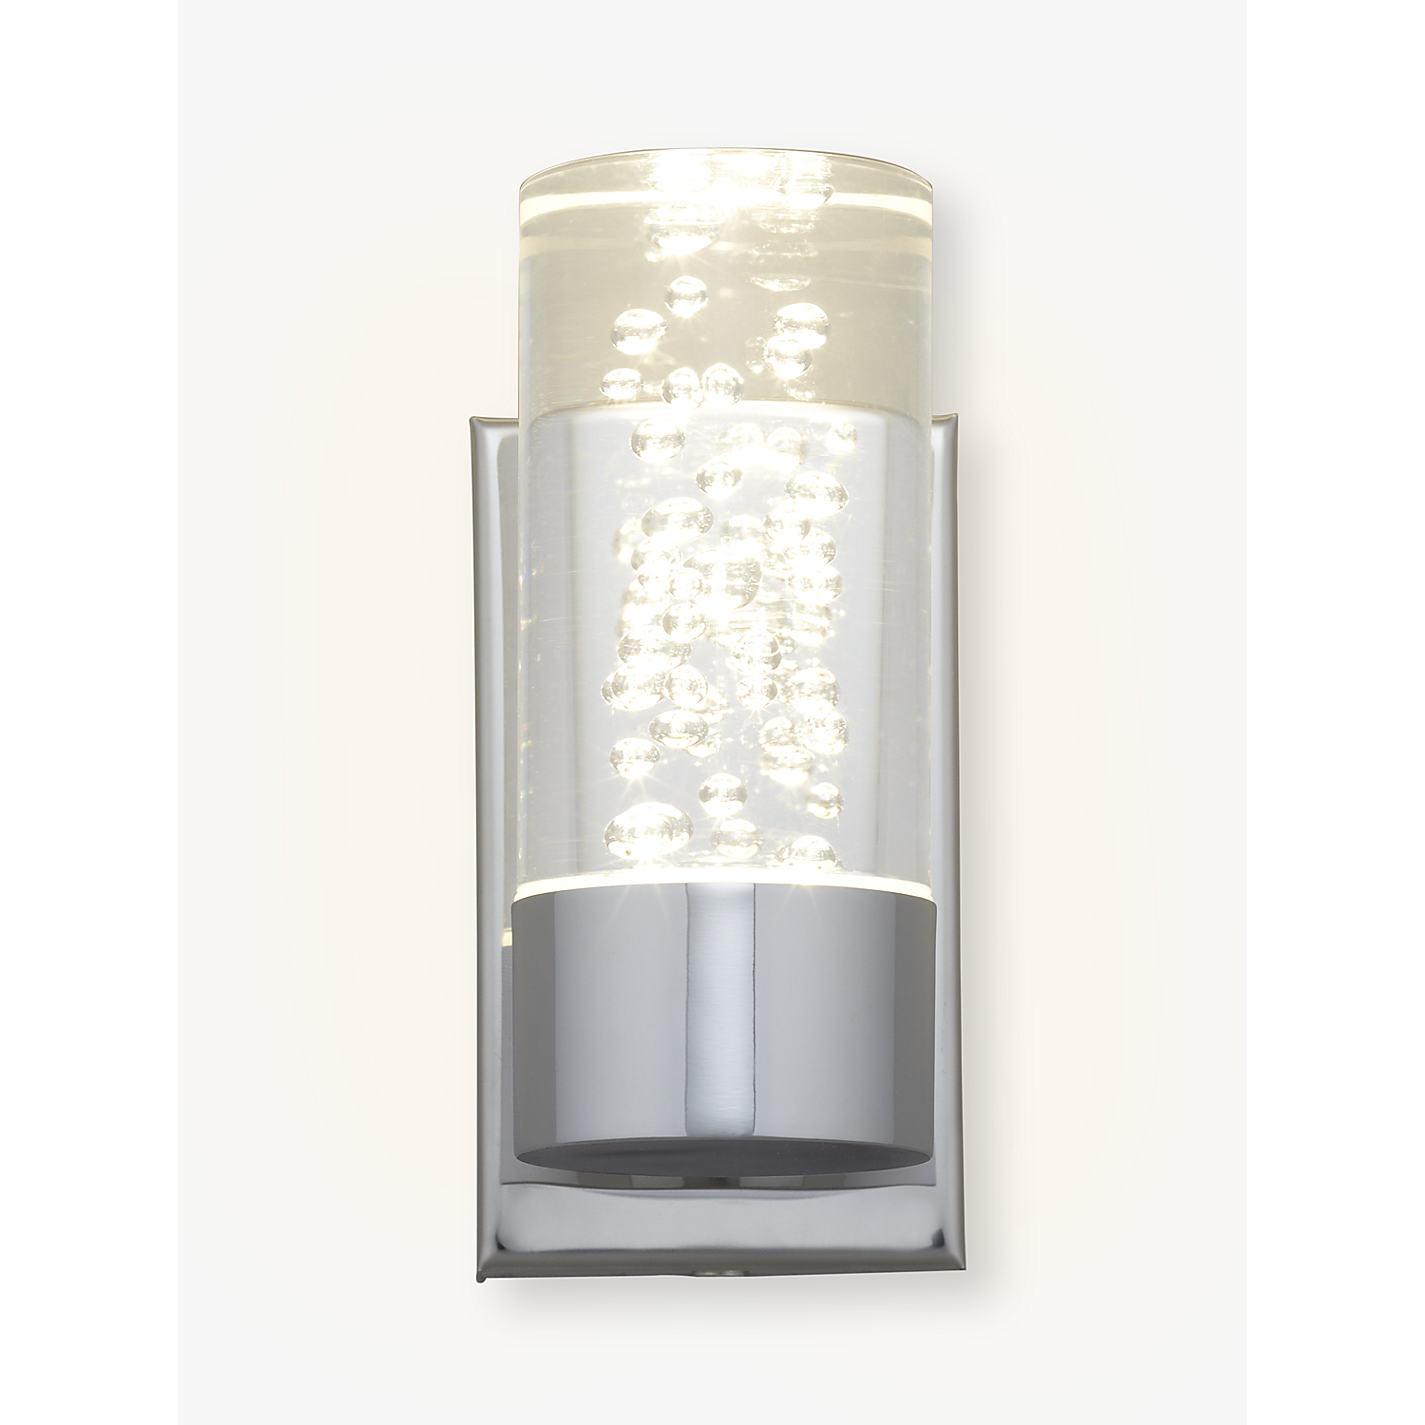 Buy john lewis zeus bubbles bathroom wall light john lewis buy john lewis zeus bubbles bathroom wall light online at johnlewis mozeypictures Image collections